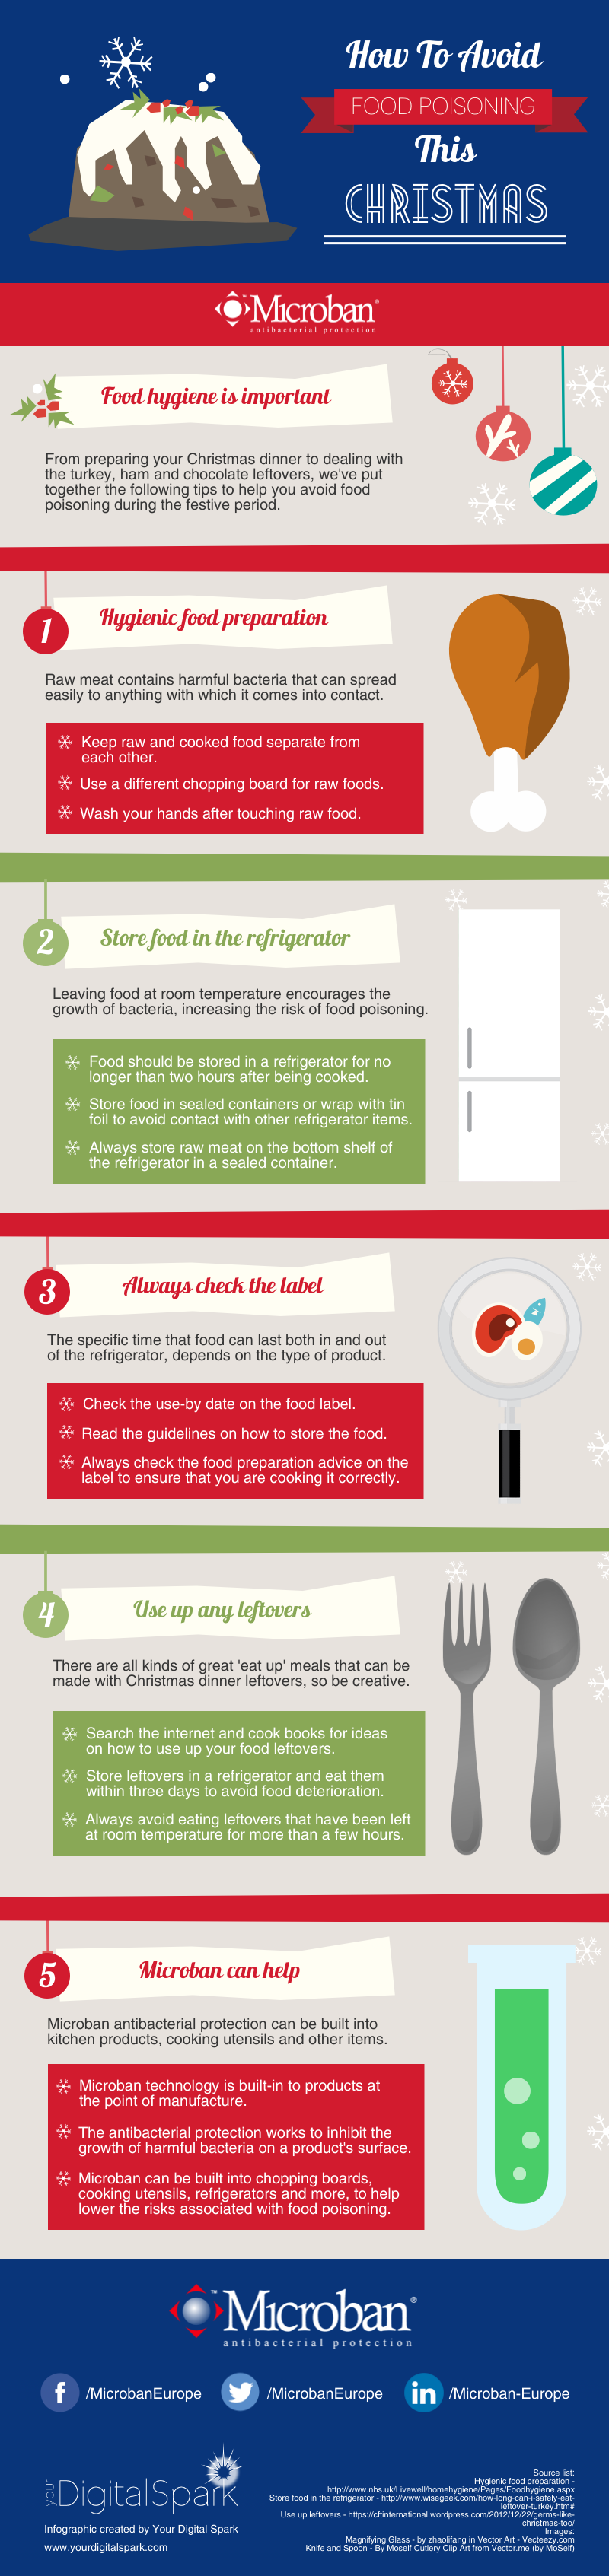 Make Sure To Avoid Food Poisoning This Christmas Infographic